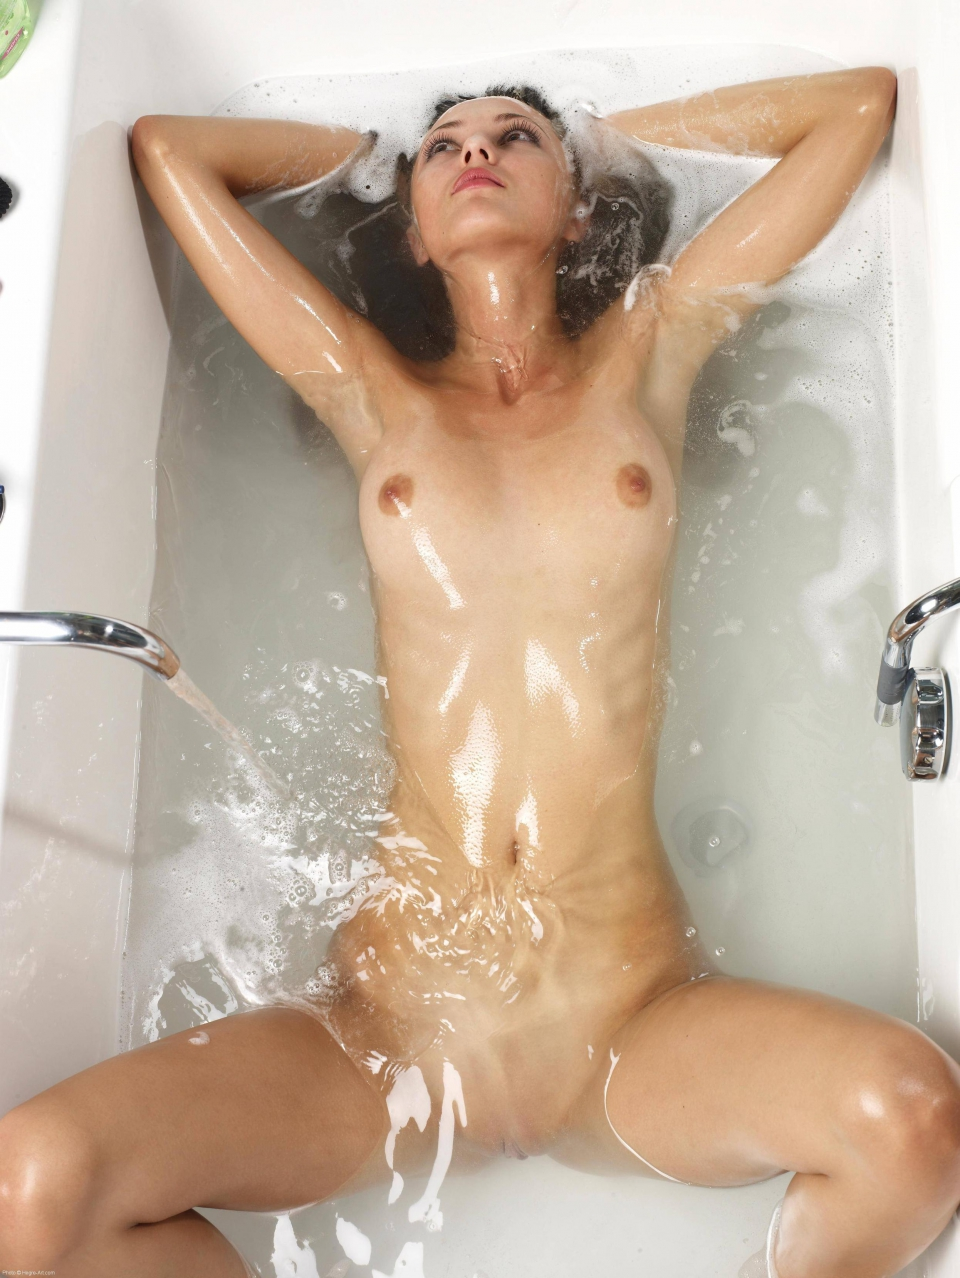 Cum Bath By Girl Nude - Babes-6832